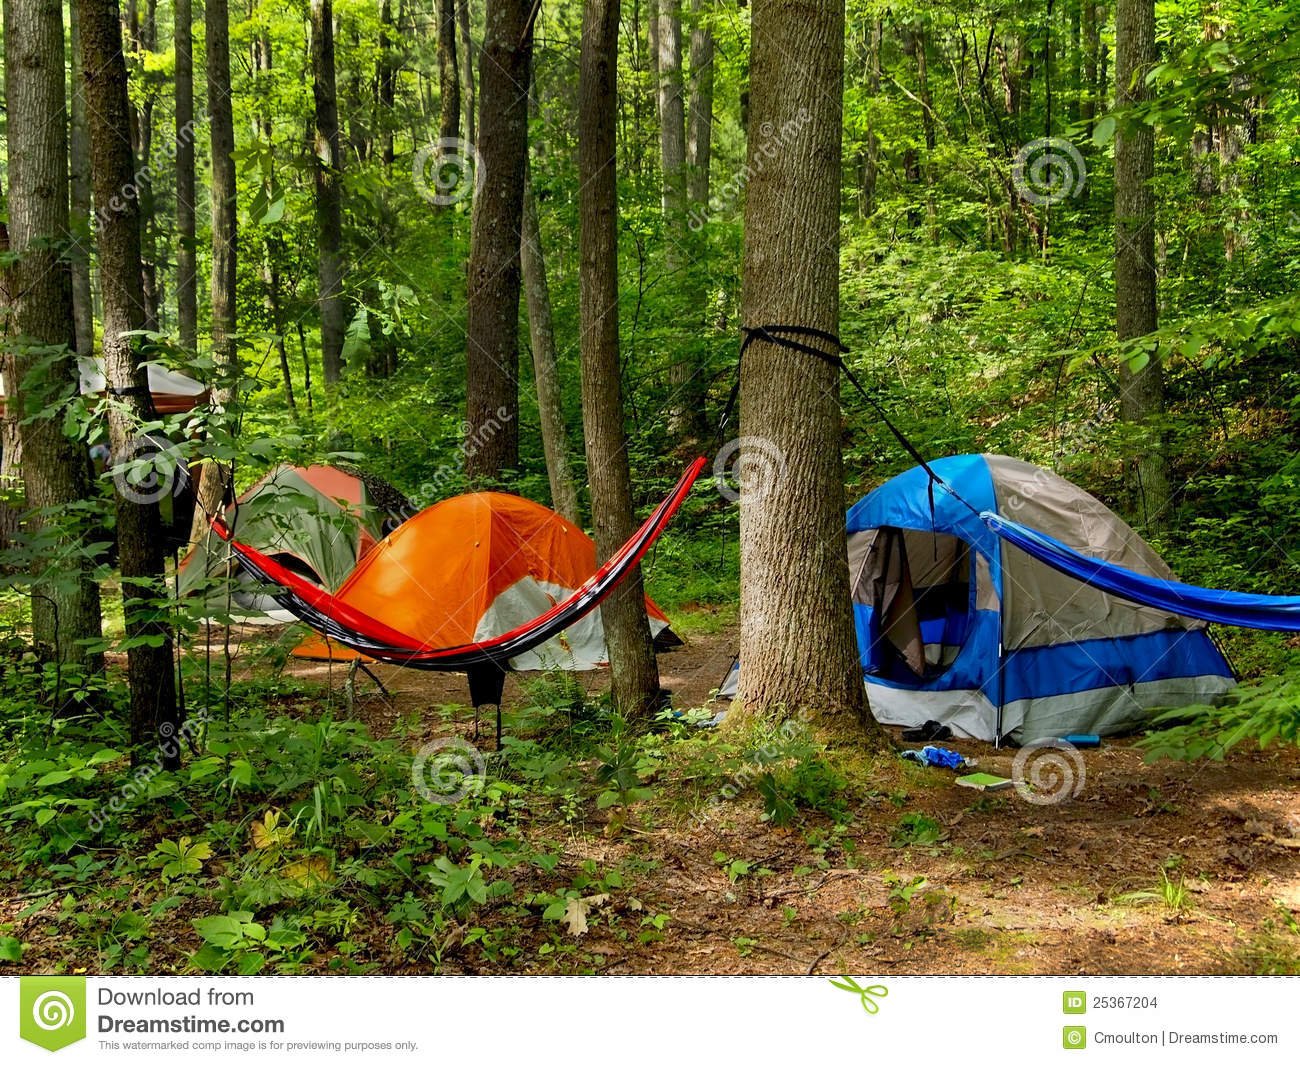 Essay On Camping In The Woods